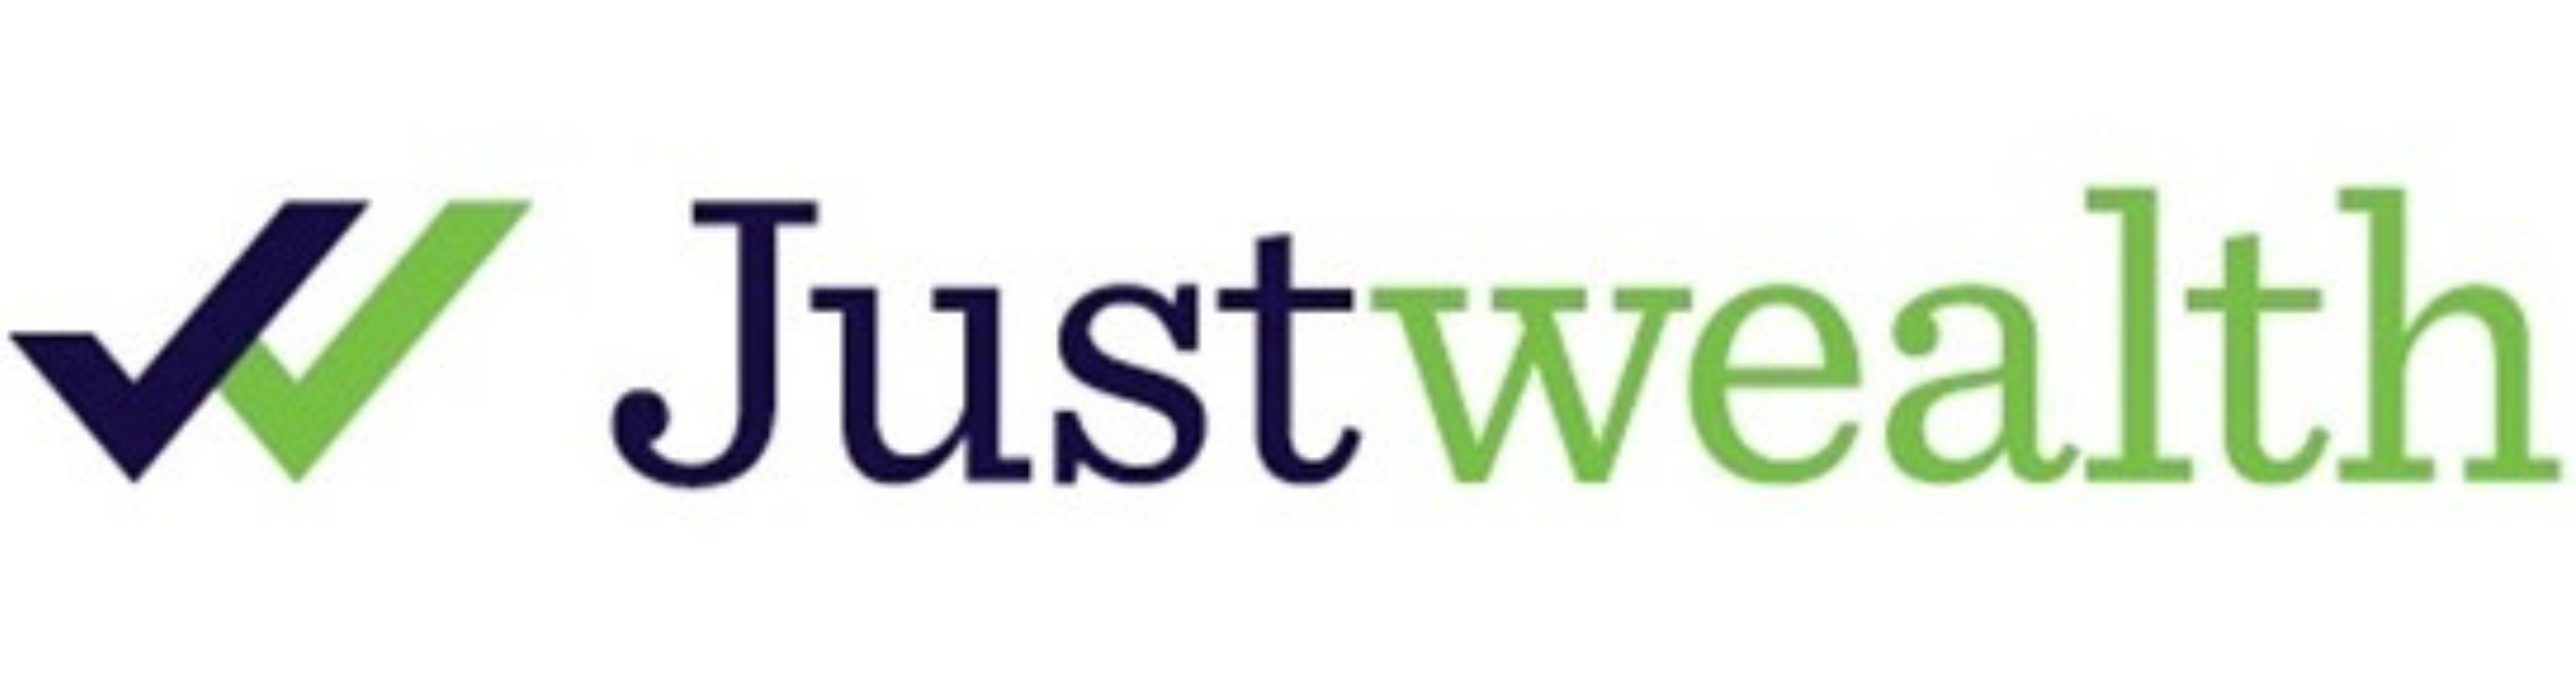 Best Canadian Robo Advisors: Justwealth